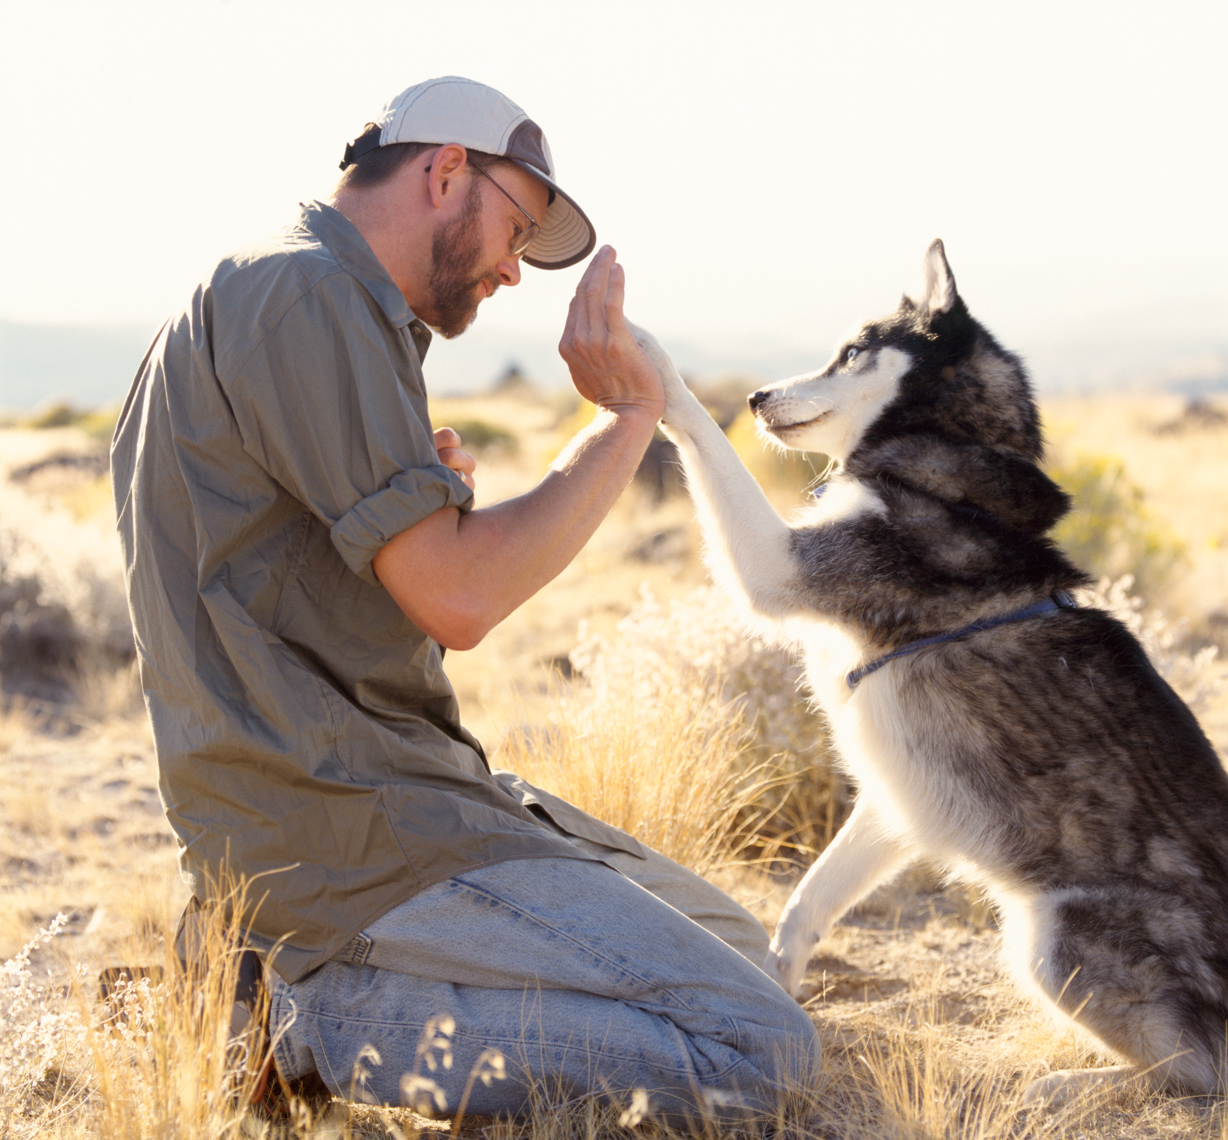 Man pet owner teaching training his Siberian husky dog. People with animals best friends, love, friendship, connection concept.